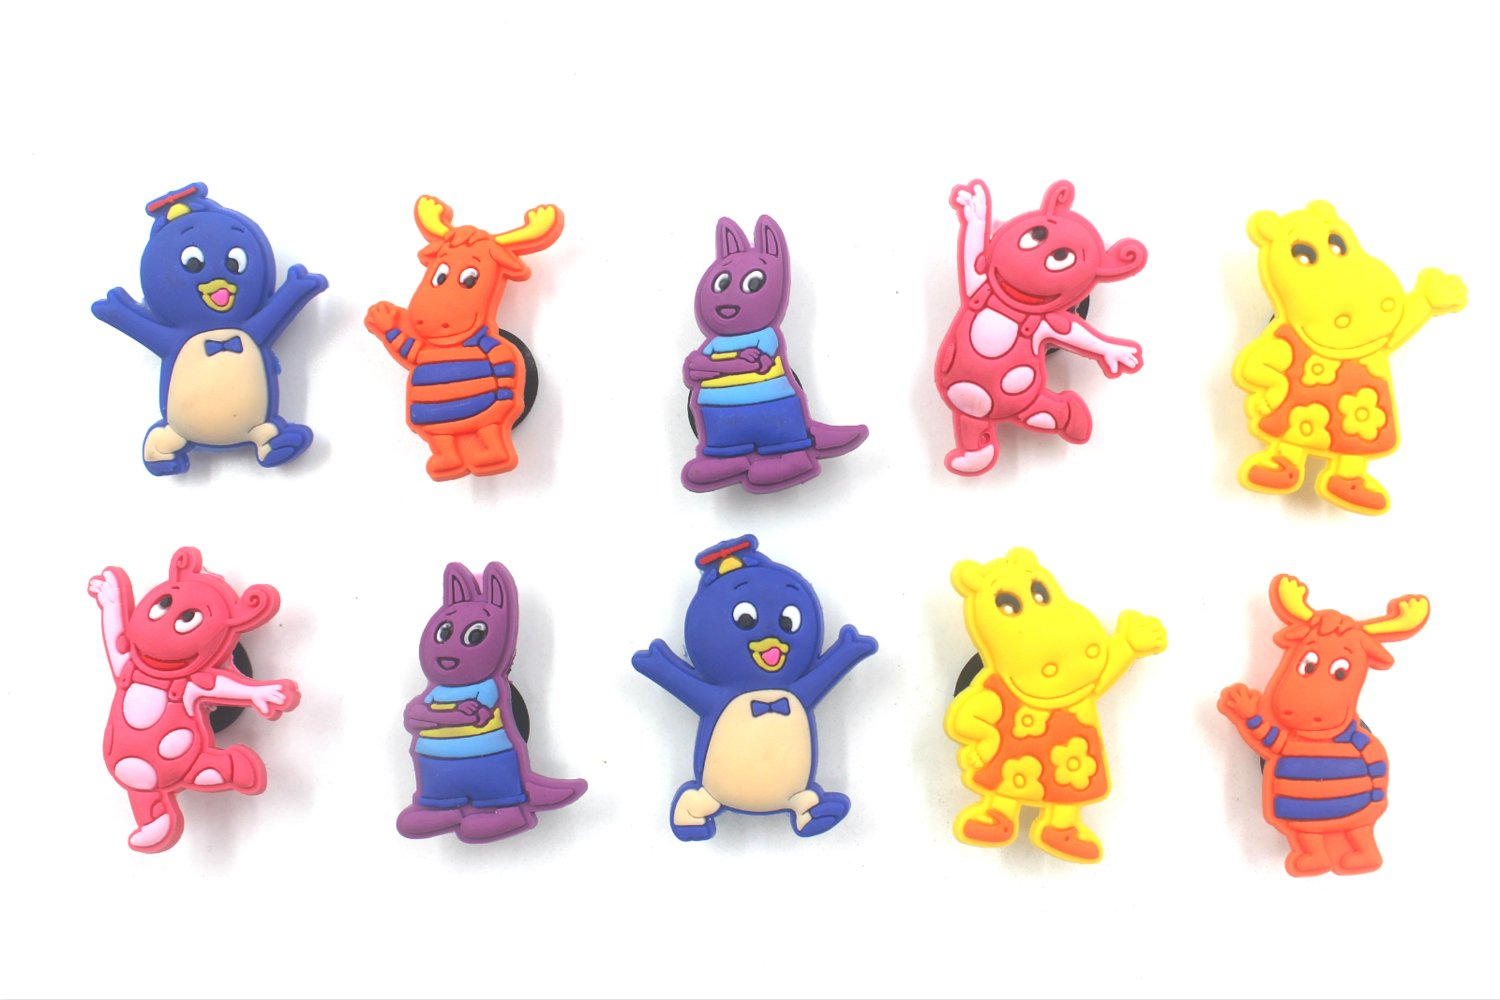 10pcs Shoe Charms for Croc & Bracelet Wristband Kids Party Birthday Gifts #032 YaqinZ